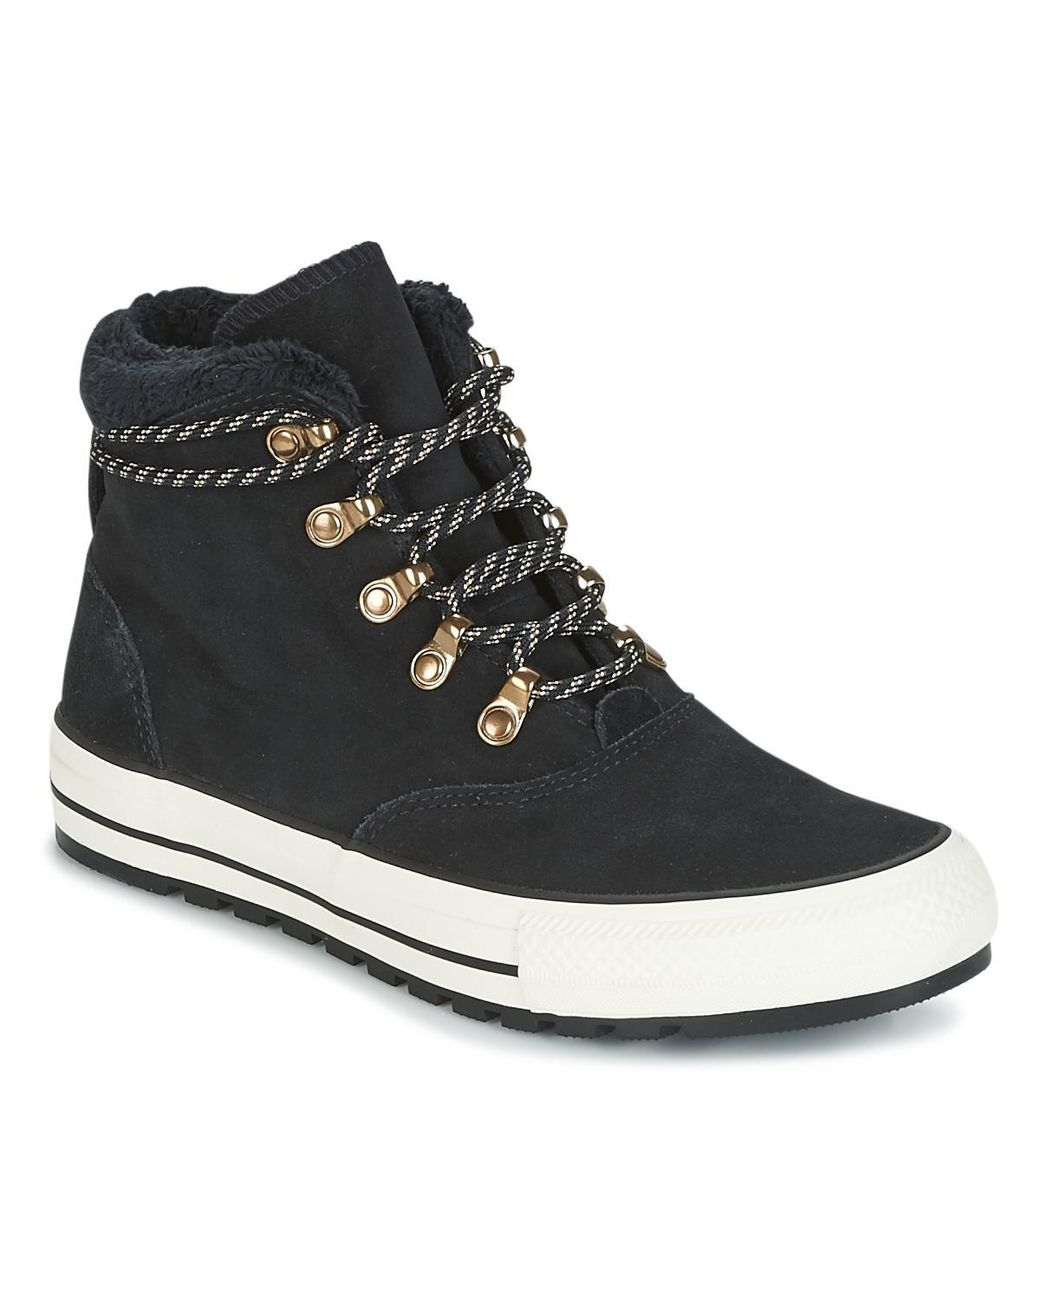 a20510d9e4f8 Converse Chuck Taylor All Star Ember Boot Shoes (high-top Trainers) in  Black - Lyst